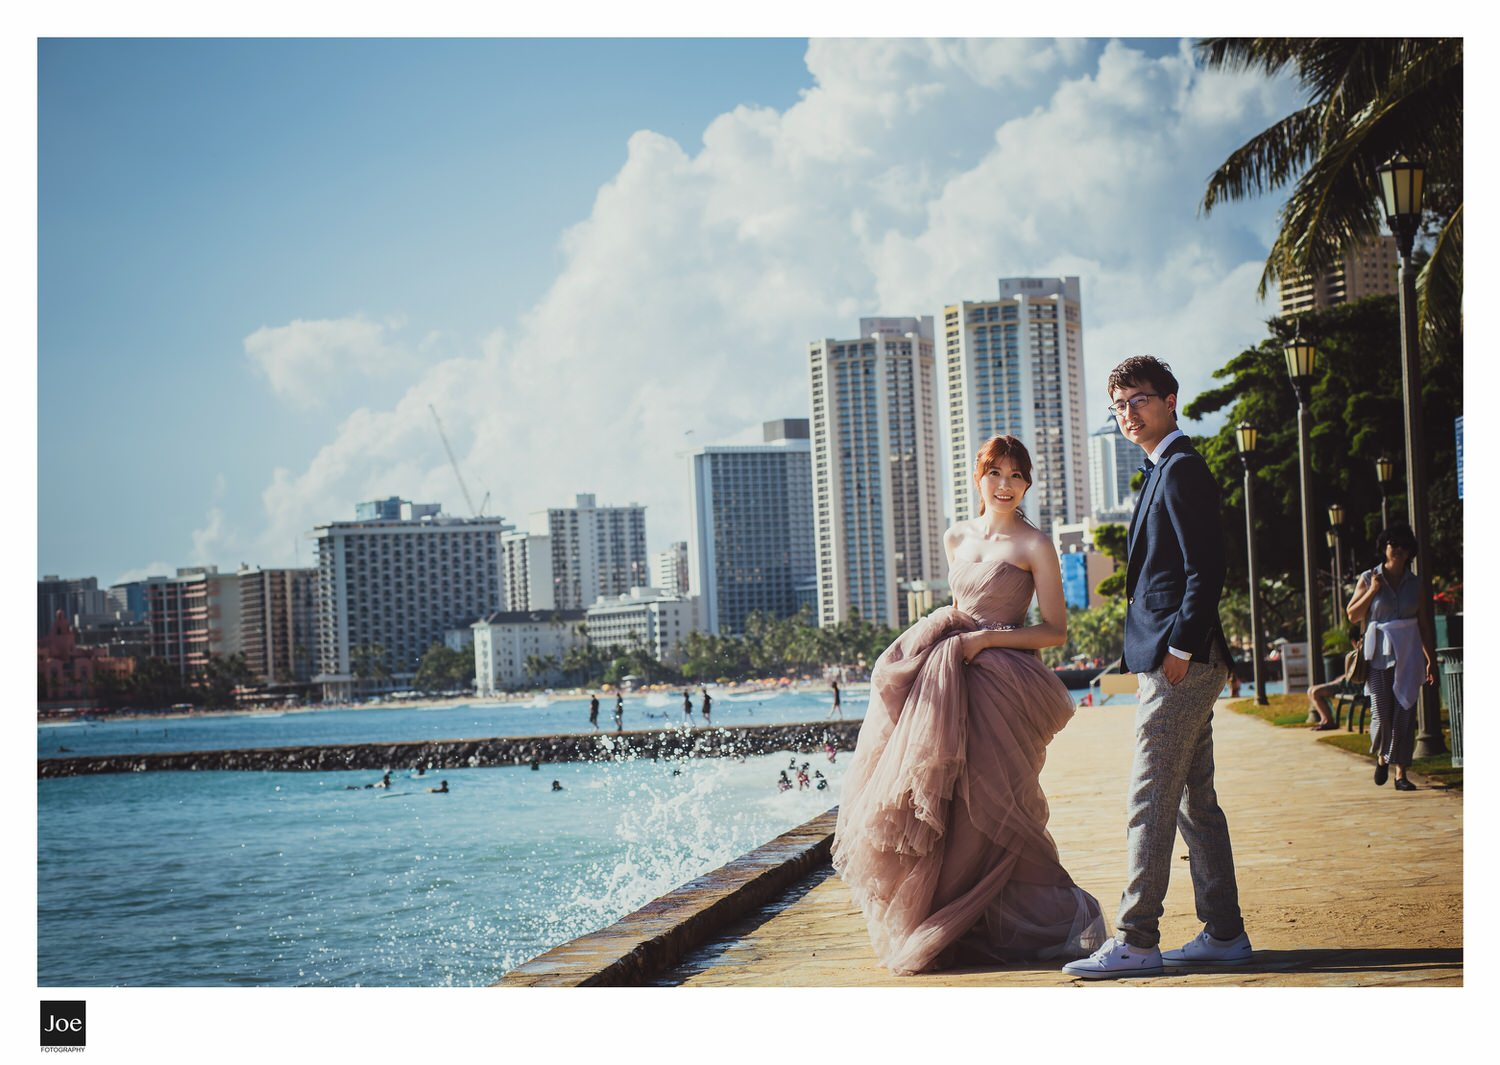 039-waikiki-beach-hawaii-pre-wedding-tiffany-tony-joe-fotography.jpg